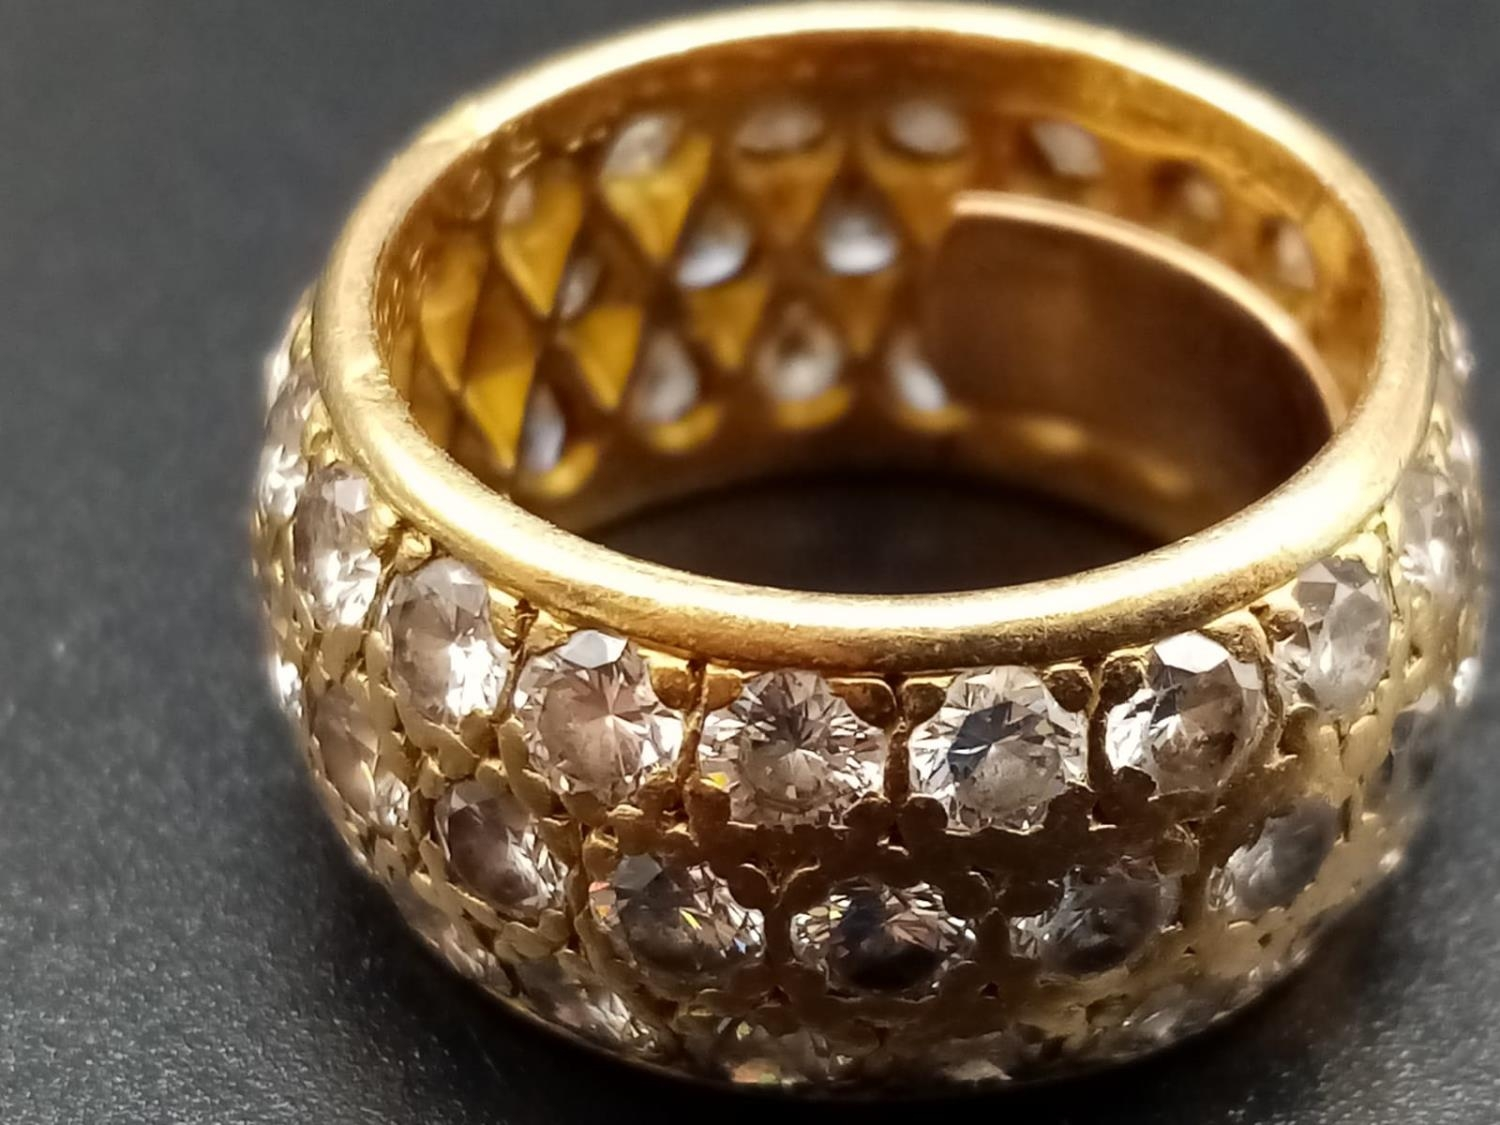 AN 18K ROSE GOLD BAND RING ENCRUSTED WITH DIAMOND STONES (APPROX 4CT) 10.3gms size k/l - Image 3 of 7